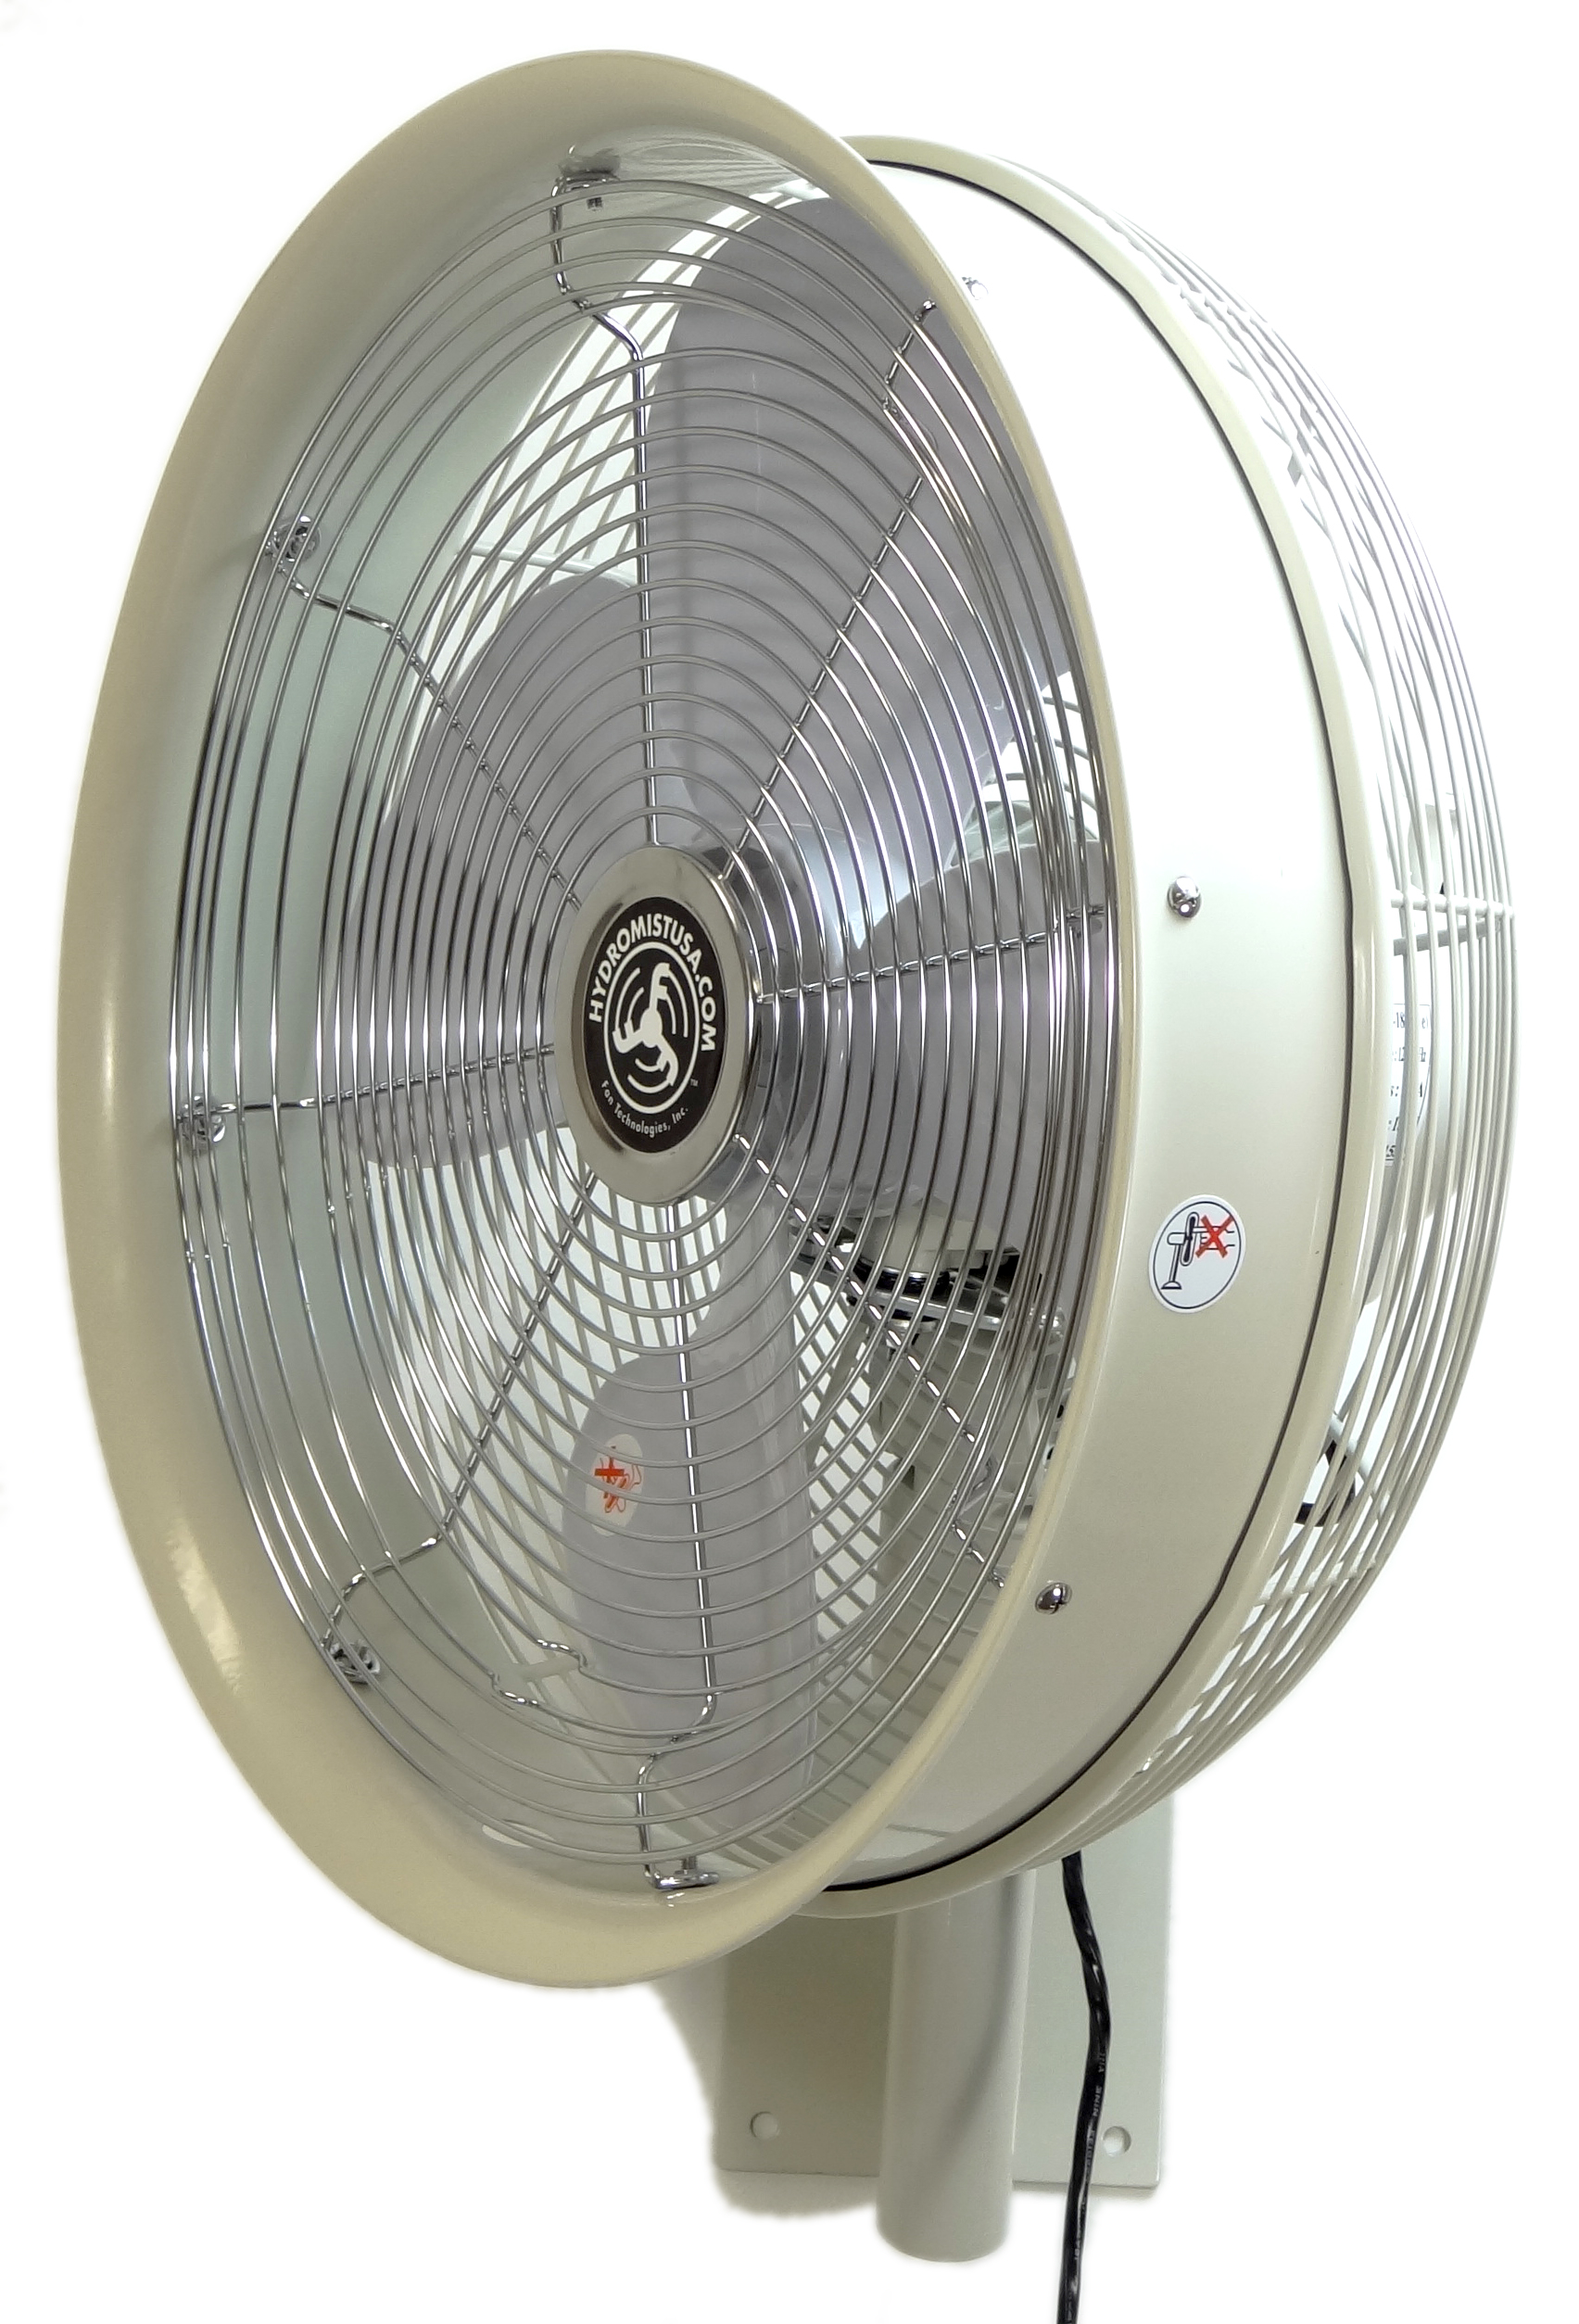 Outdoor 18 Inch Shrouded Oscillating Fan only-3 speed control on cord